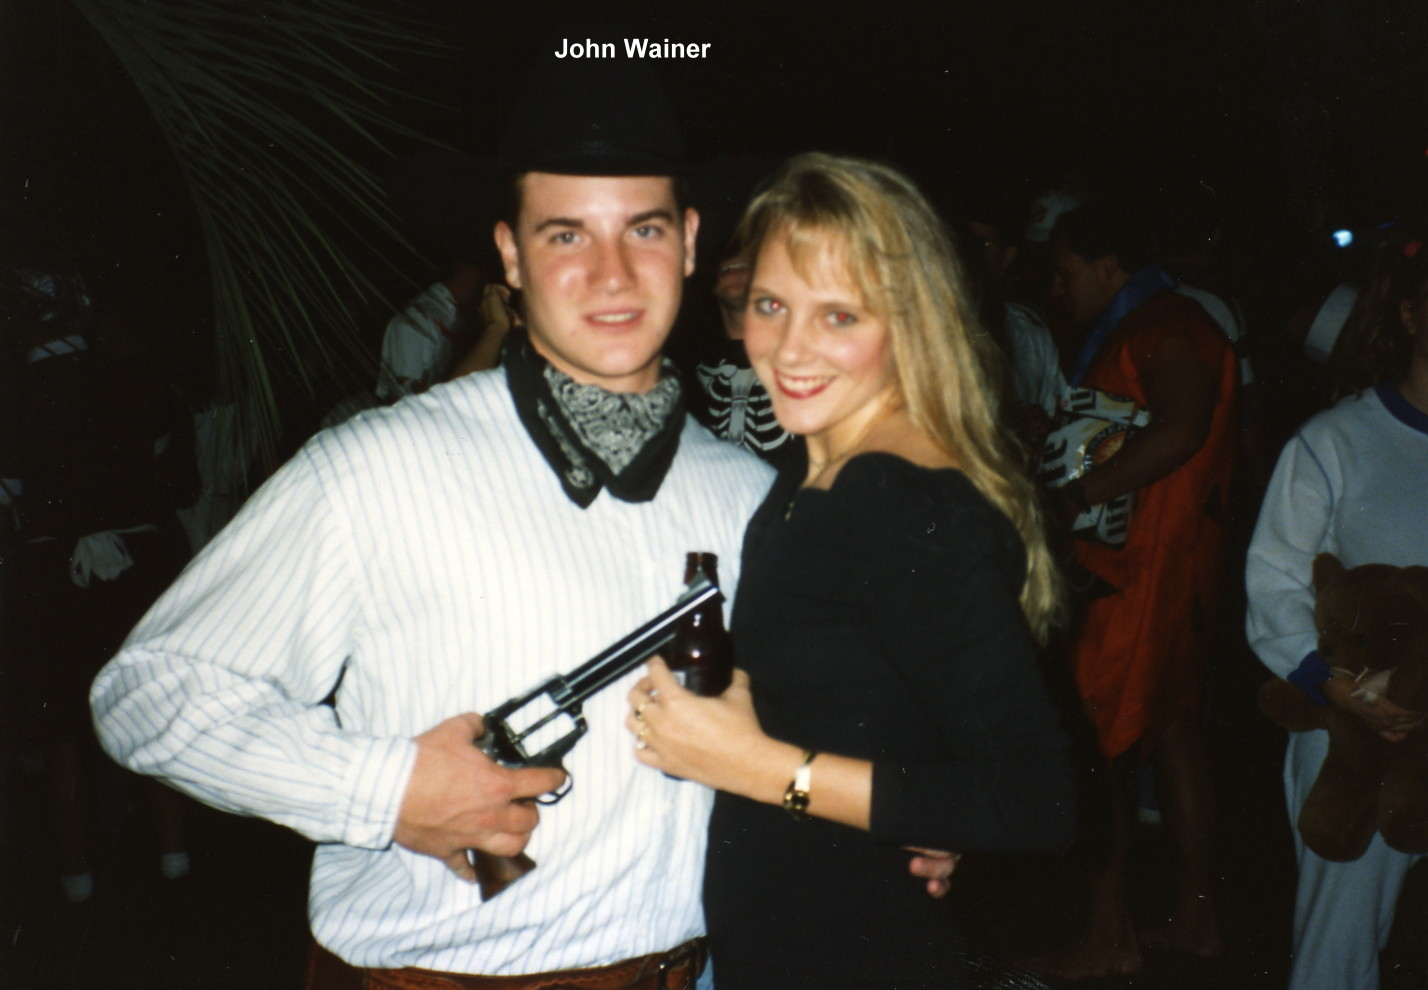 1993 JohnWainer at Haunted Block.jpg